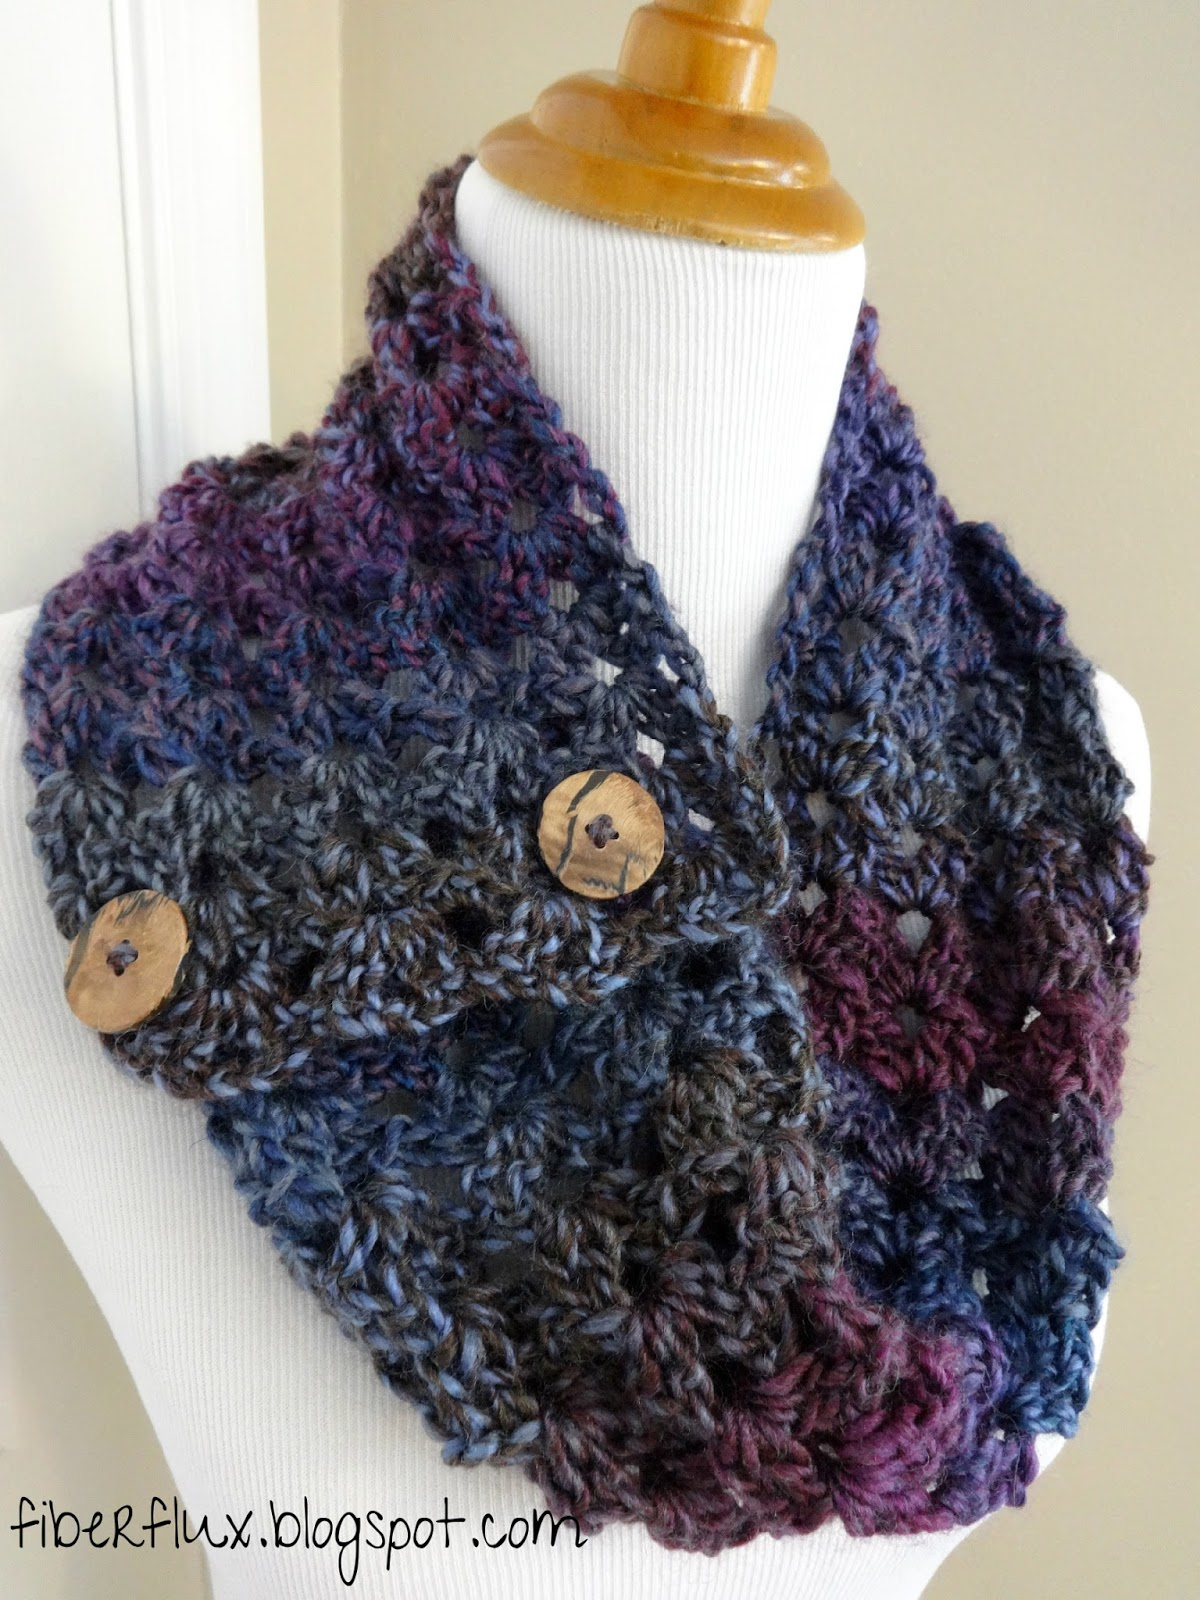 Free Crochet Pattern For A Cowl : Fiber Flux: Free Crochet Pattern...Estelle Button Cowl!